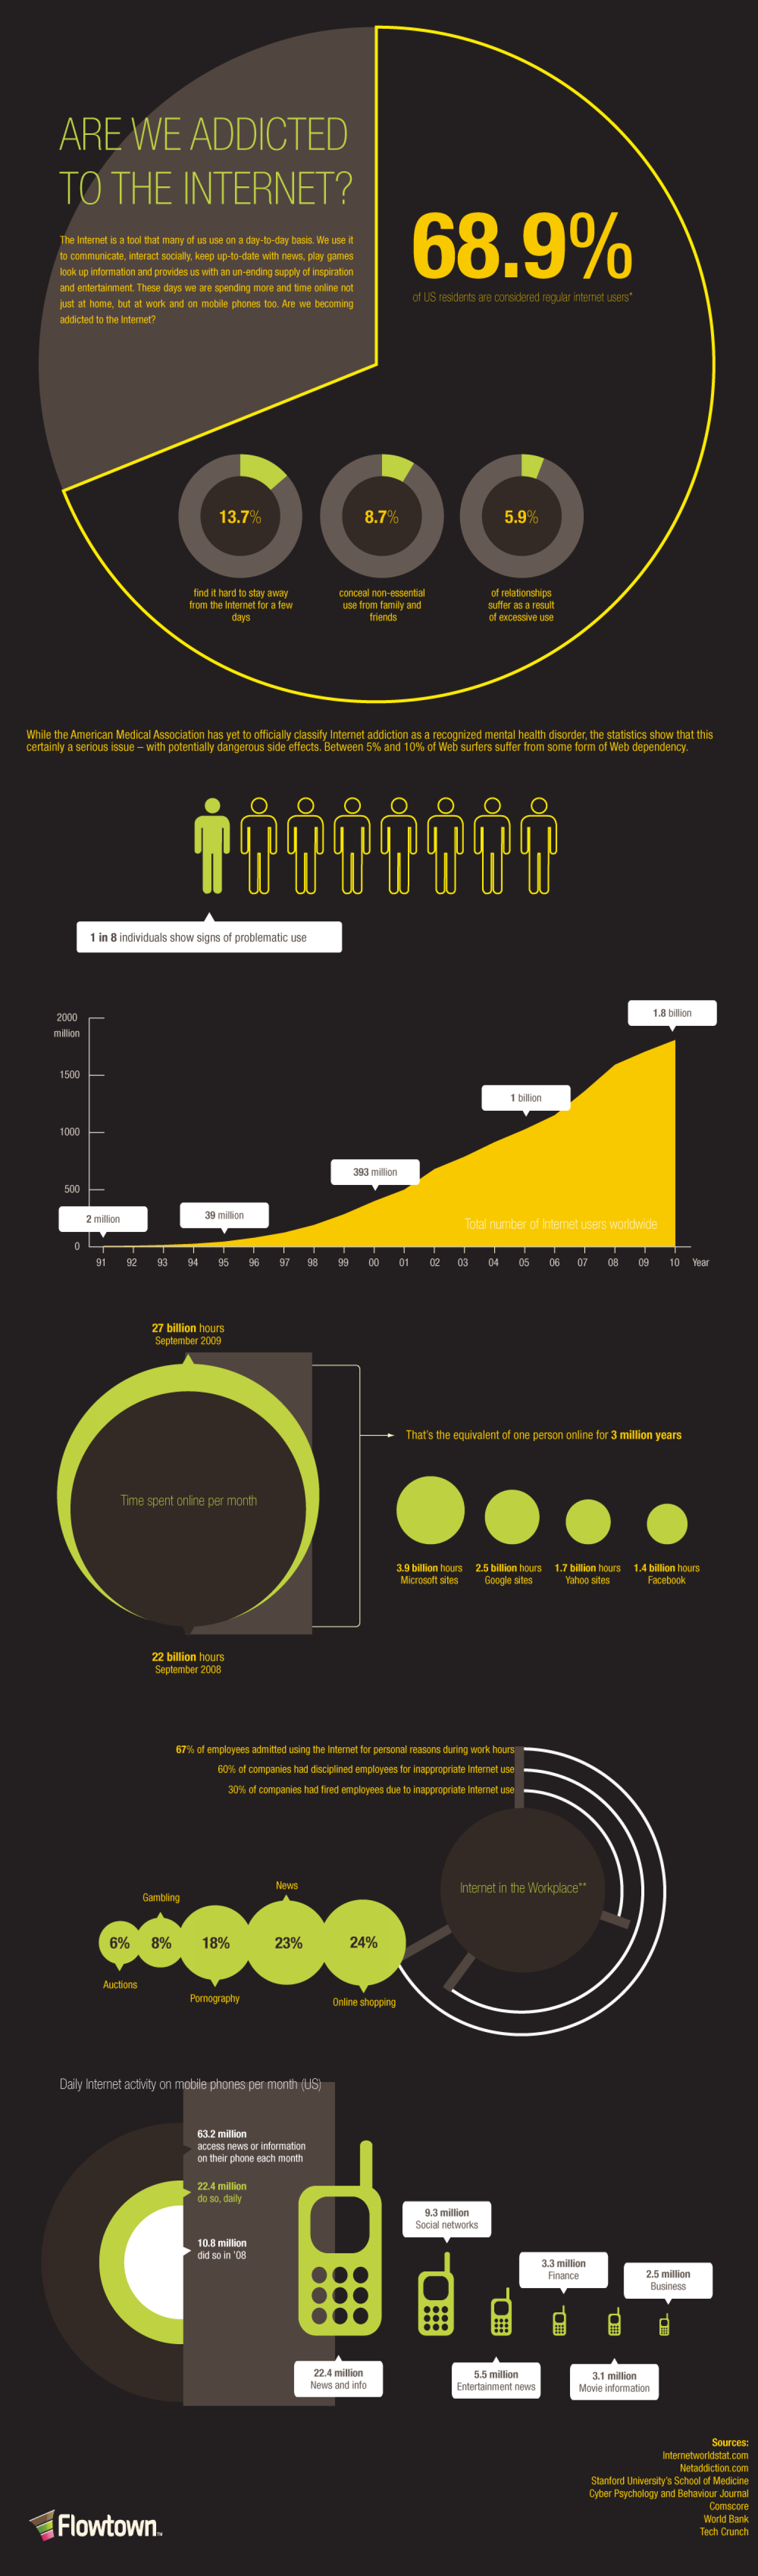 Are We Addicted To the Internet? Infographic